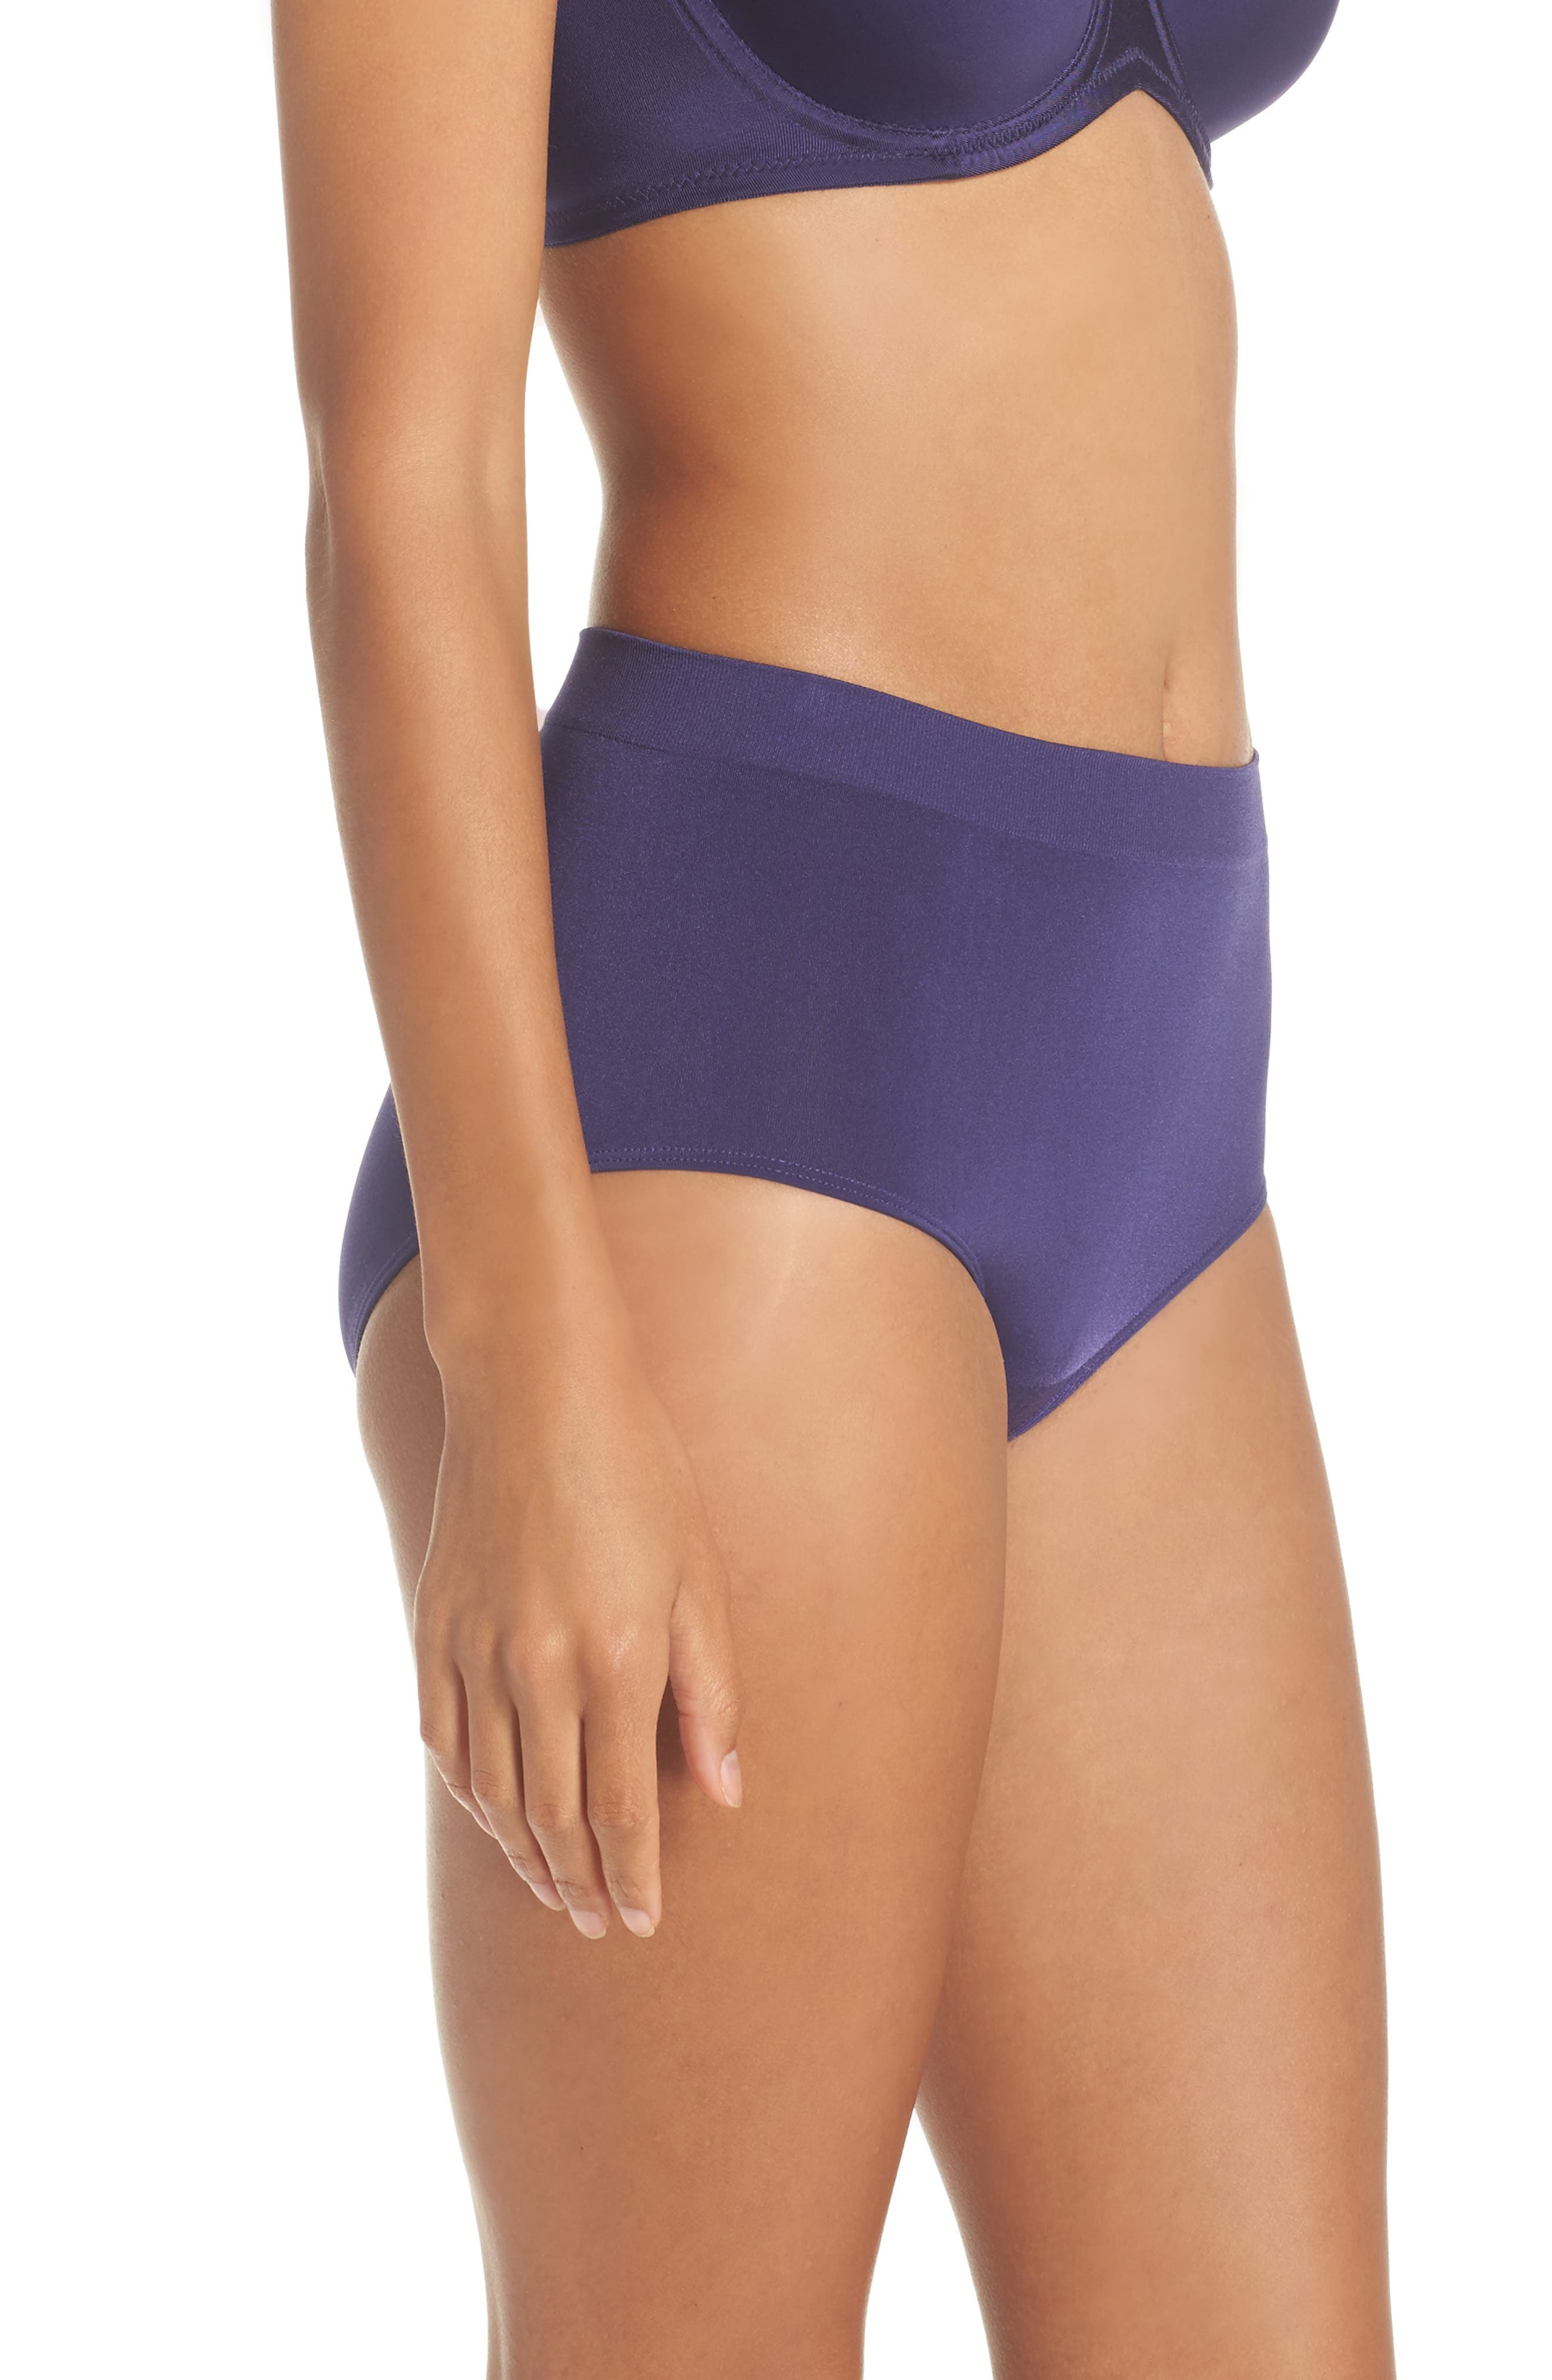 B Smooth Briefs,                             Alternate thumbnail 139, color,